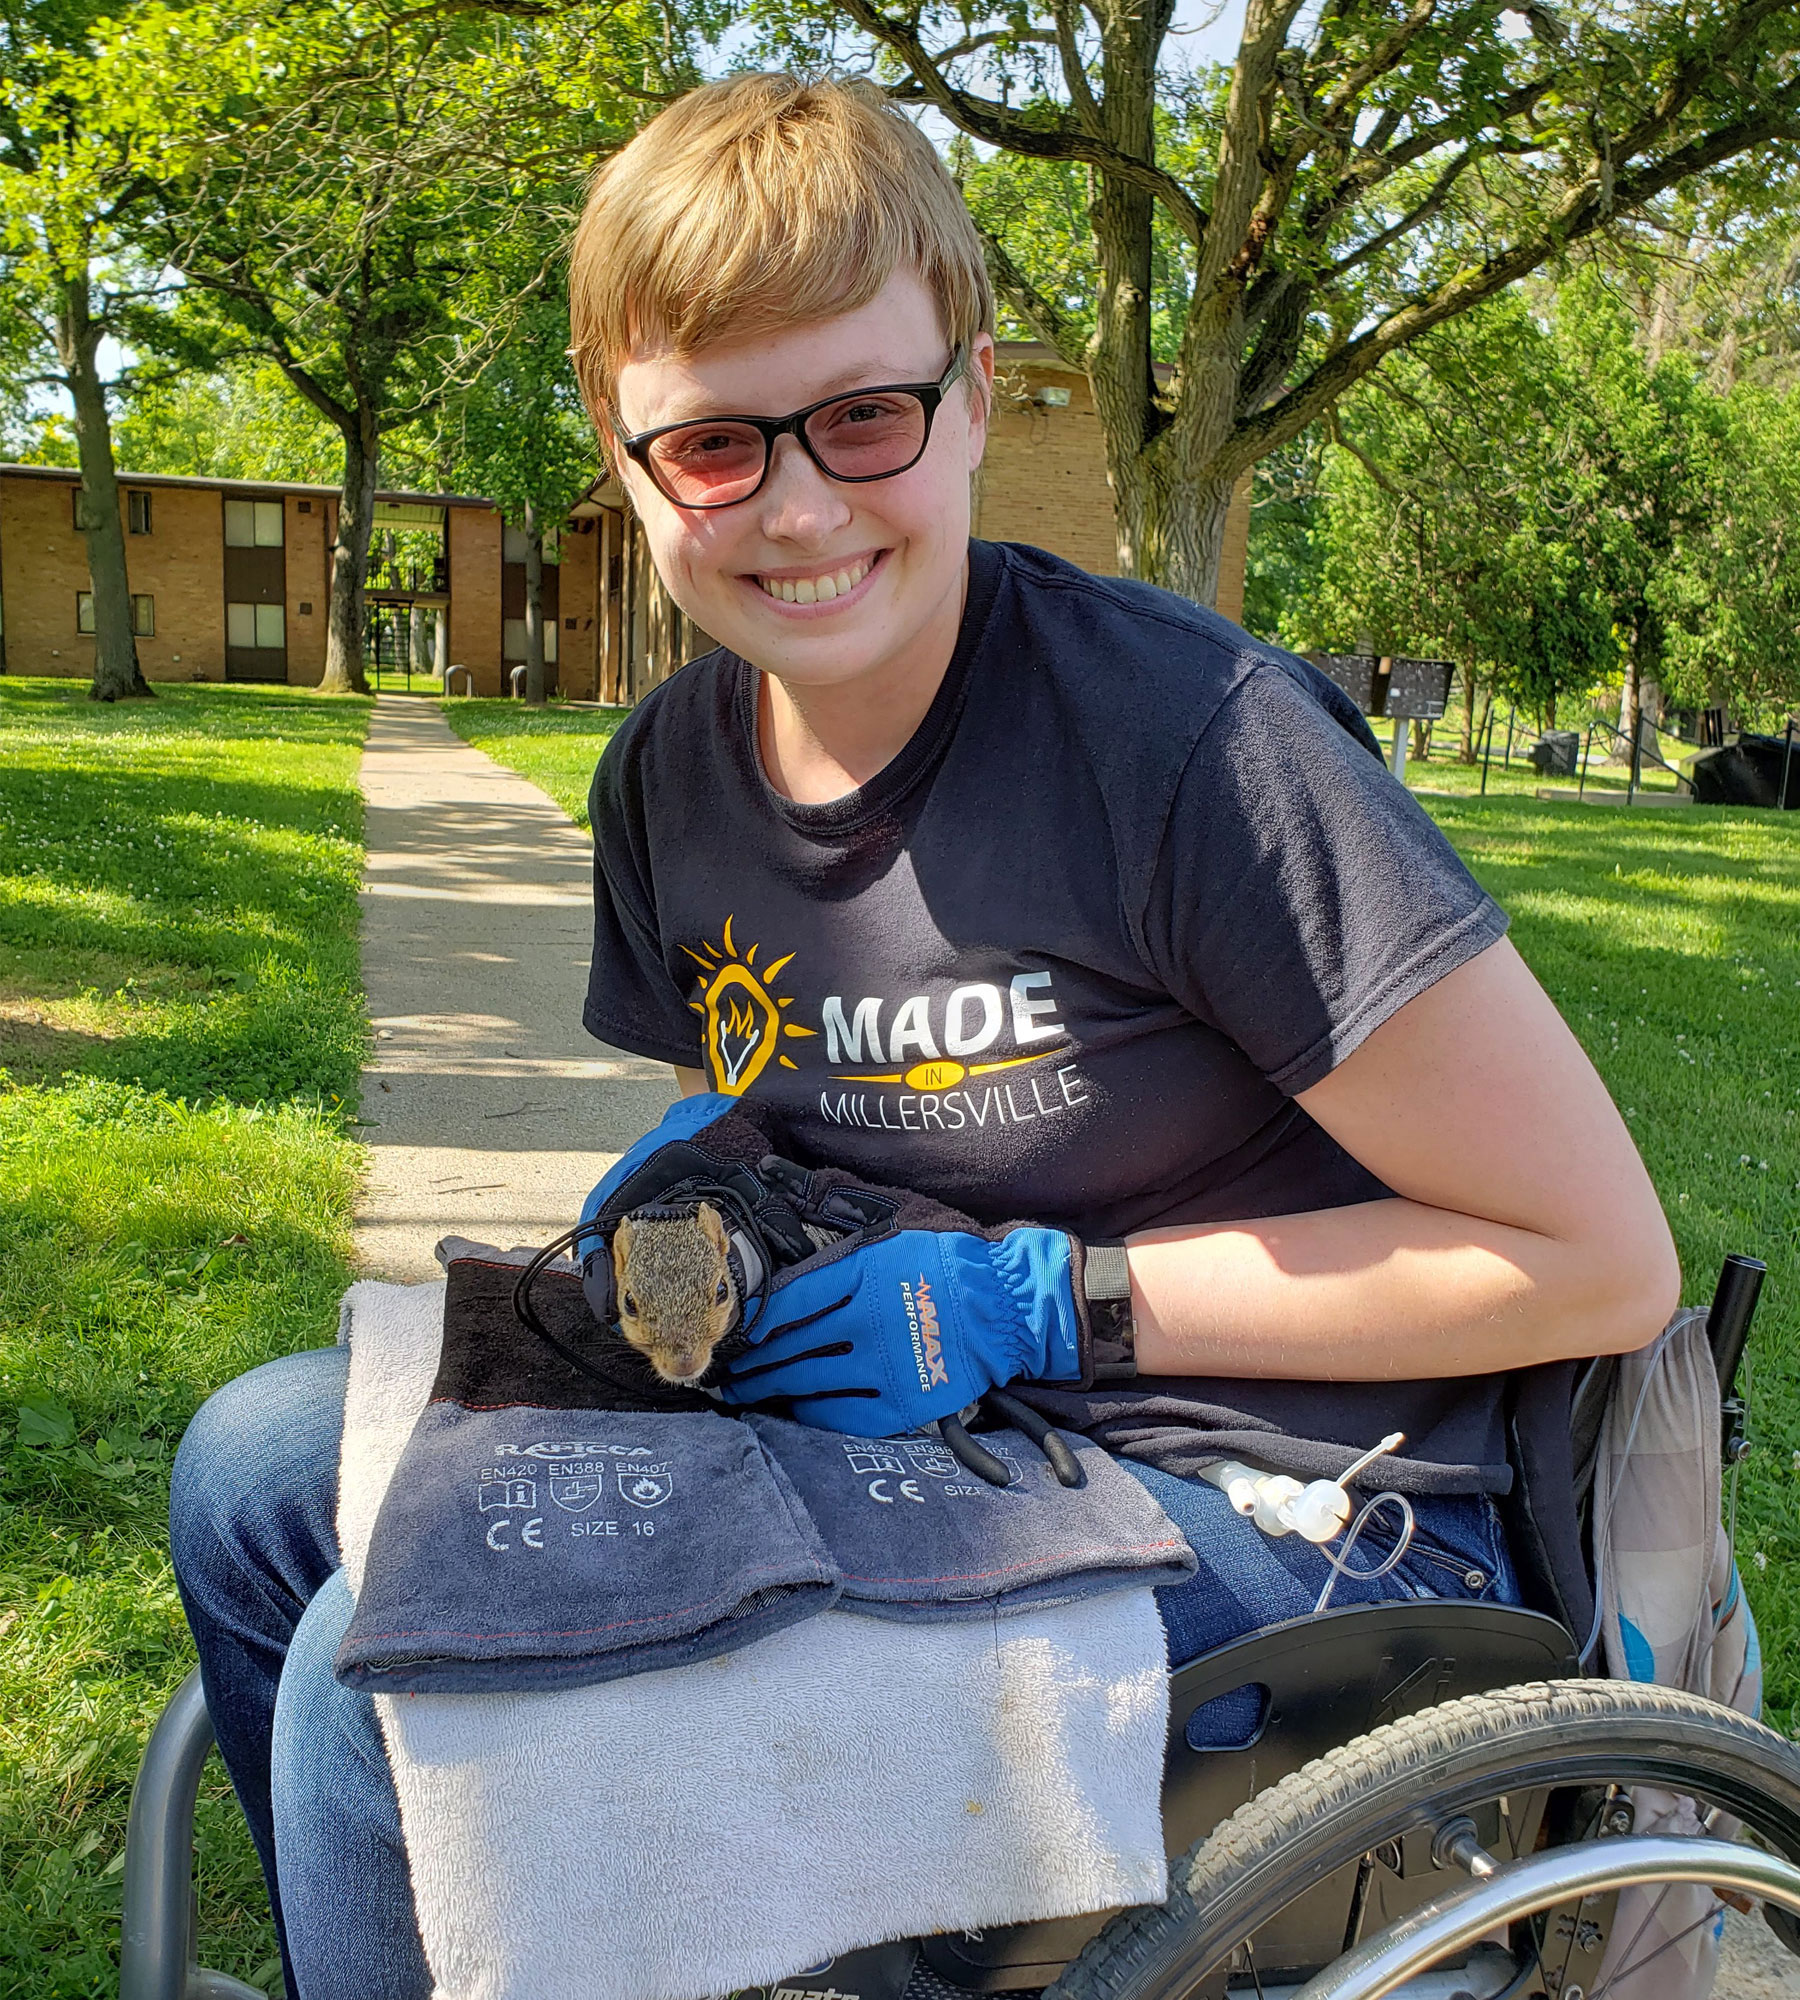 Amy-Charlotte Devitz sits in her motorized wheelchair and holds a squirrel during her on-campus research.